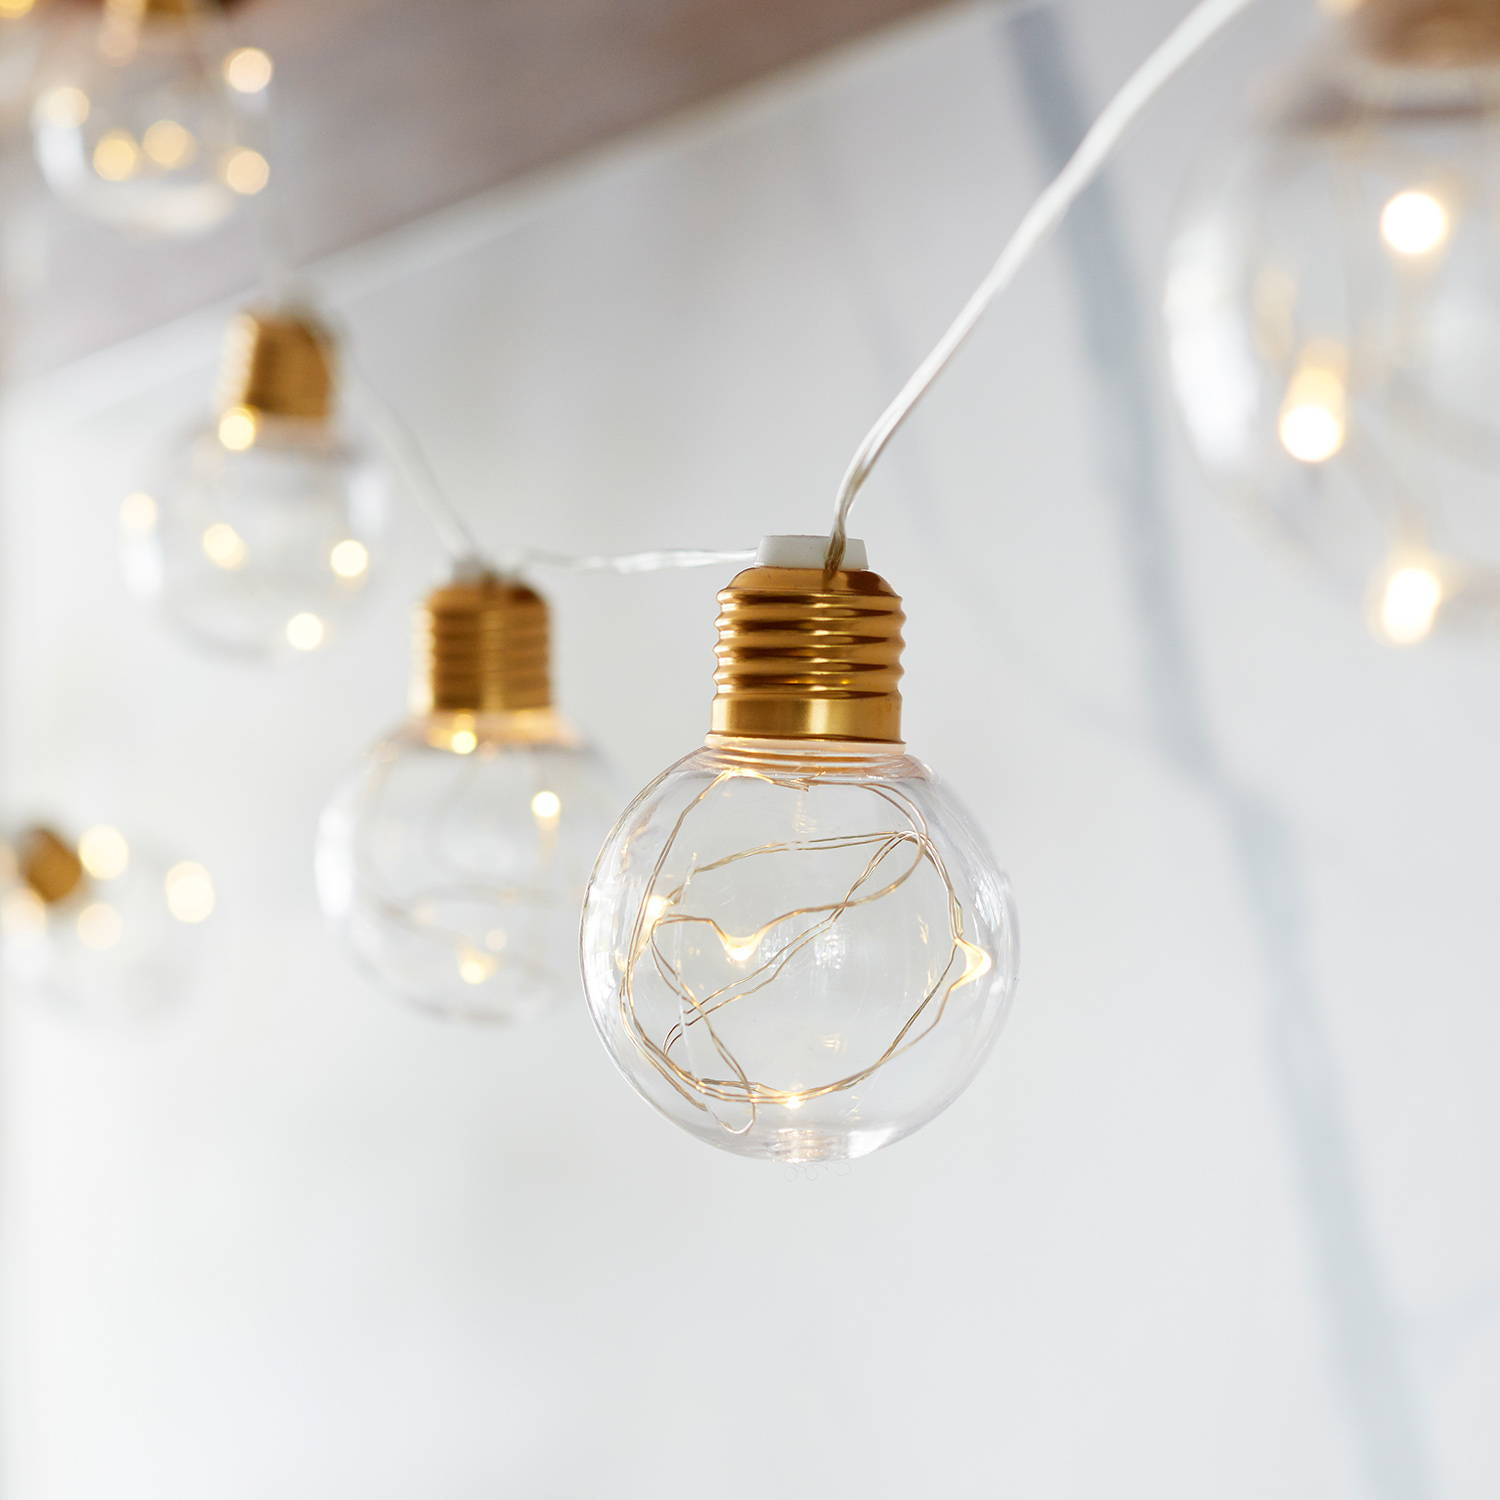 Brass micro battery festoon lights illuminated